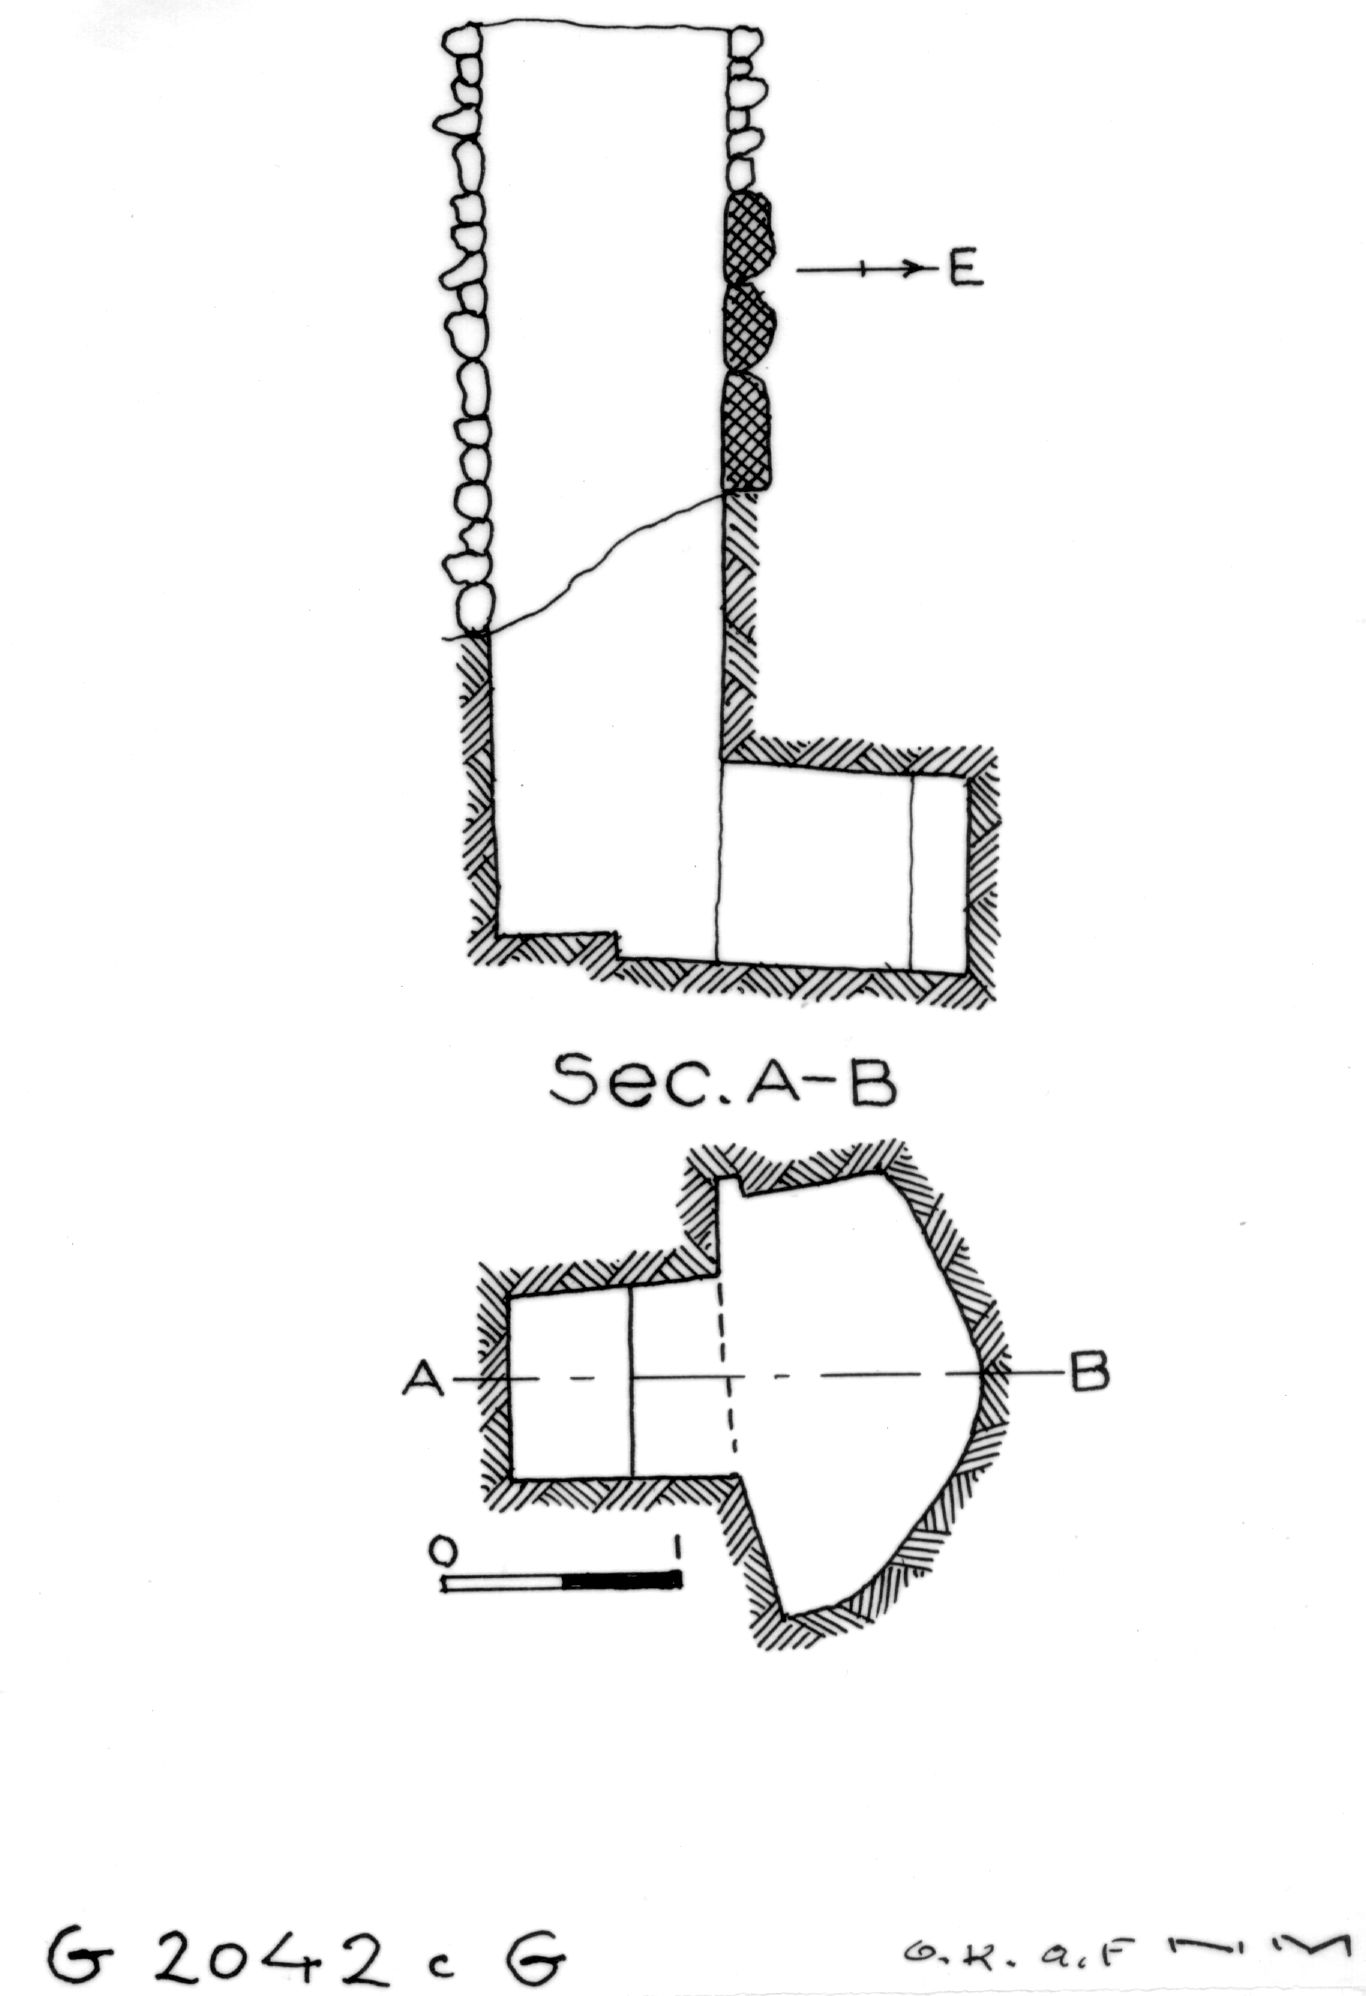 Maps and plans: G 2042c, Shaft G